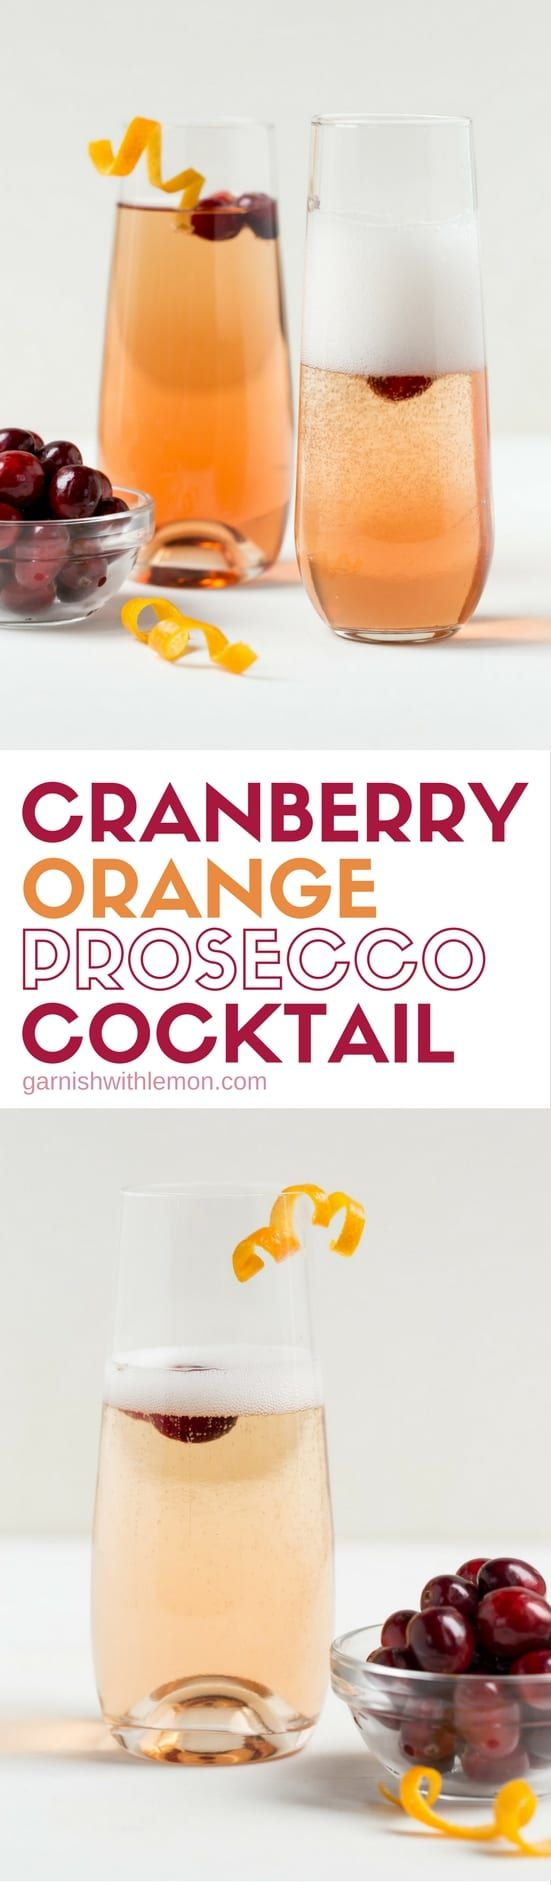 Bubbles add instant sparkle to a drink. This Cranberry Orange Prosecco Cocktail is a tasty way to toast friends and family this holiday season.